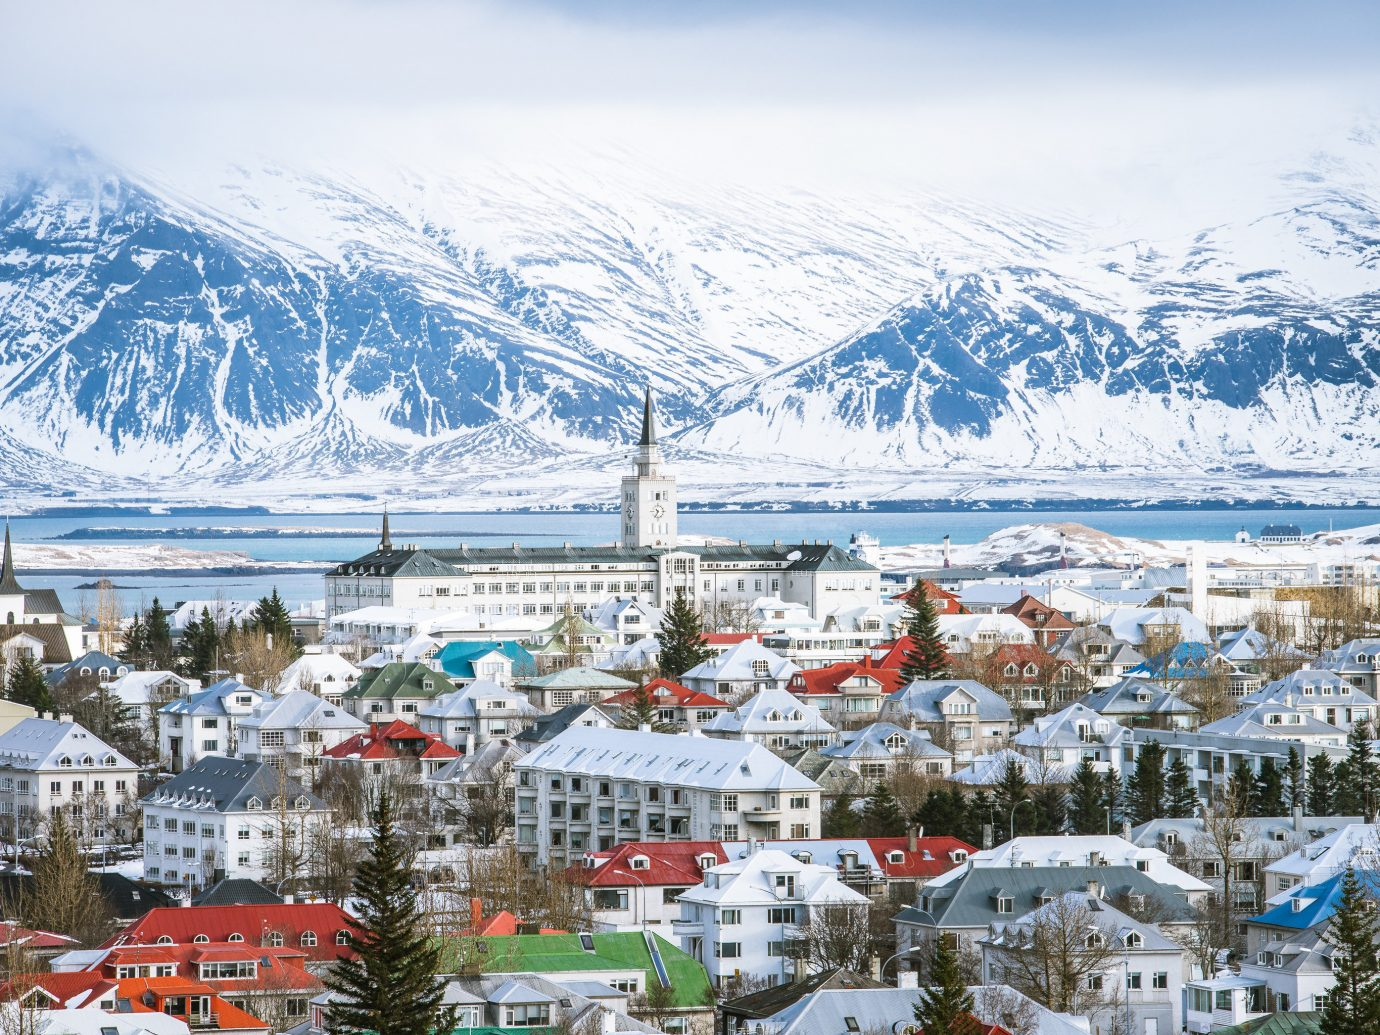 Boutique Hotels Hotels Iceland Reykjavík Winter snow mountain range Town mountain sky alps City glacial landform tourist attraction tourism arctic tree mountain village water mount scenery Village landscape Lake fell freezing house